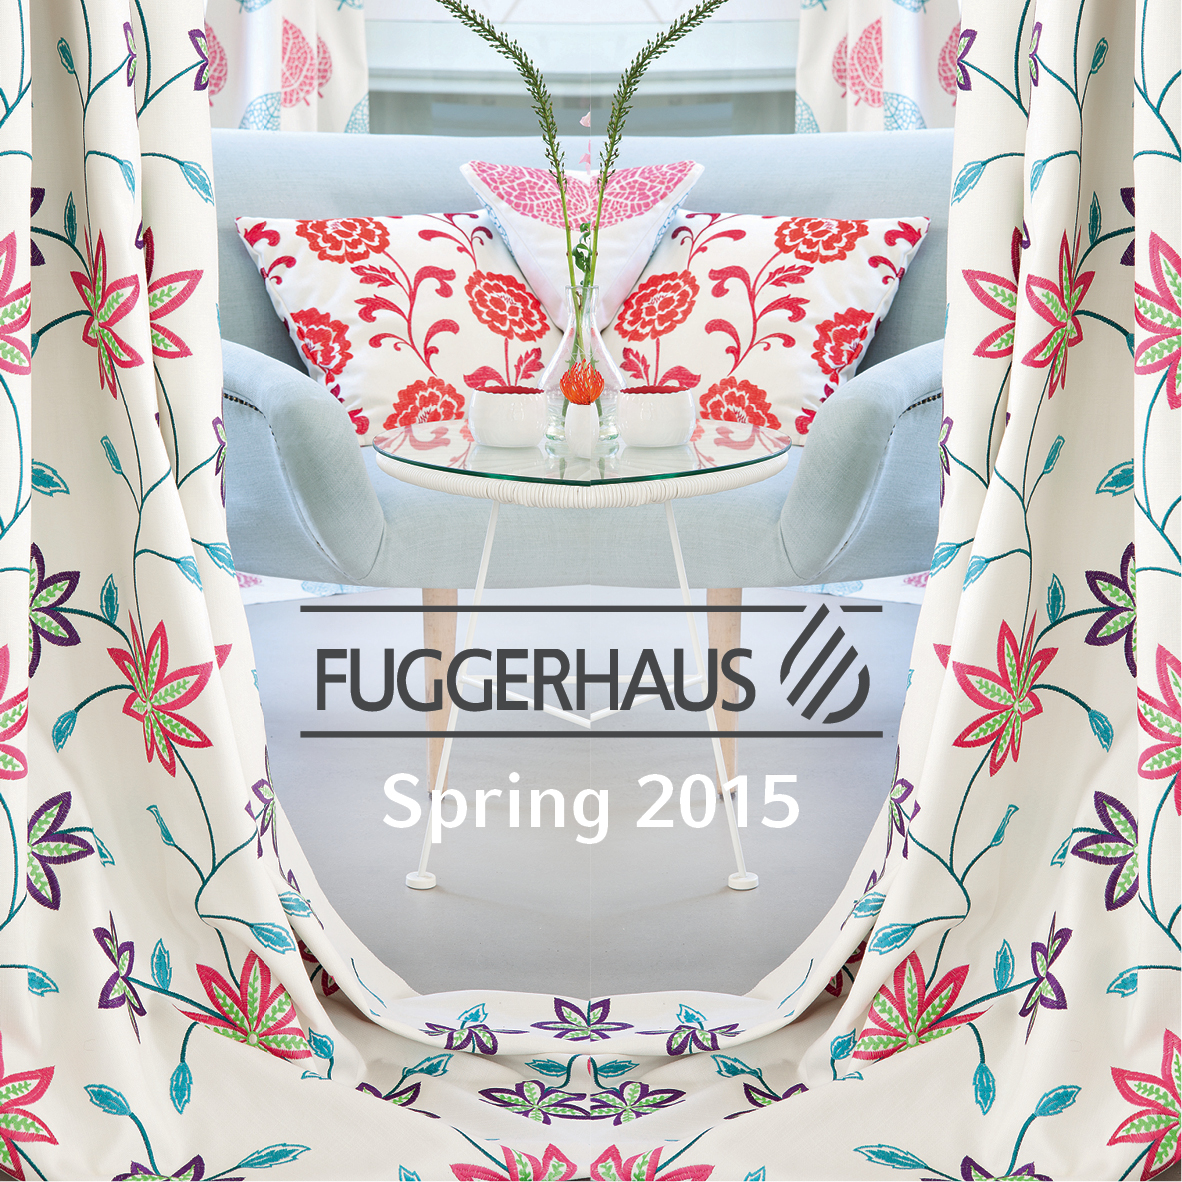 Fuggerhaus collection Spring 2015